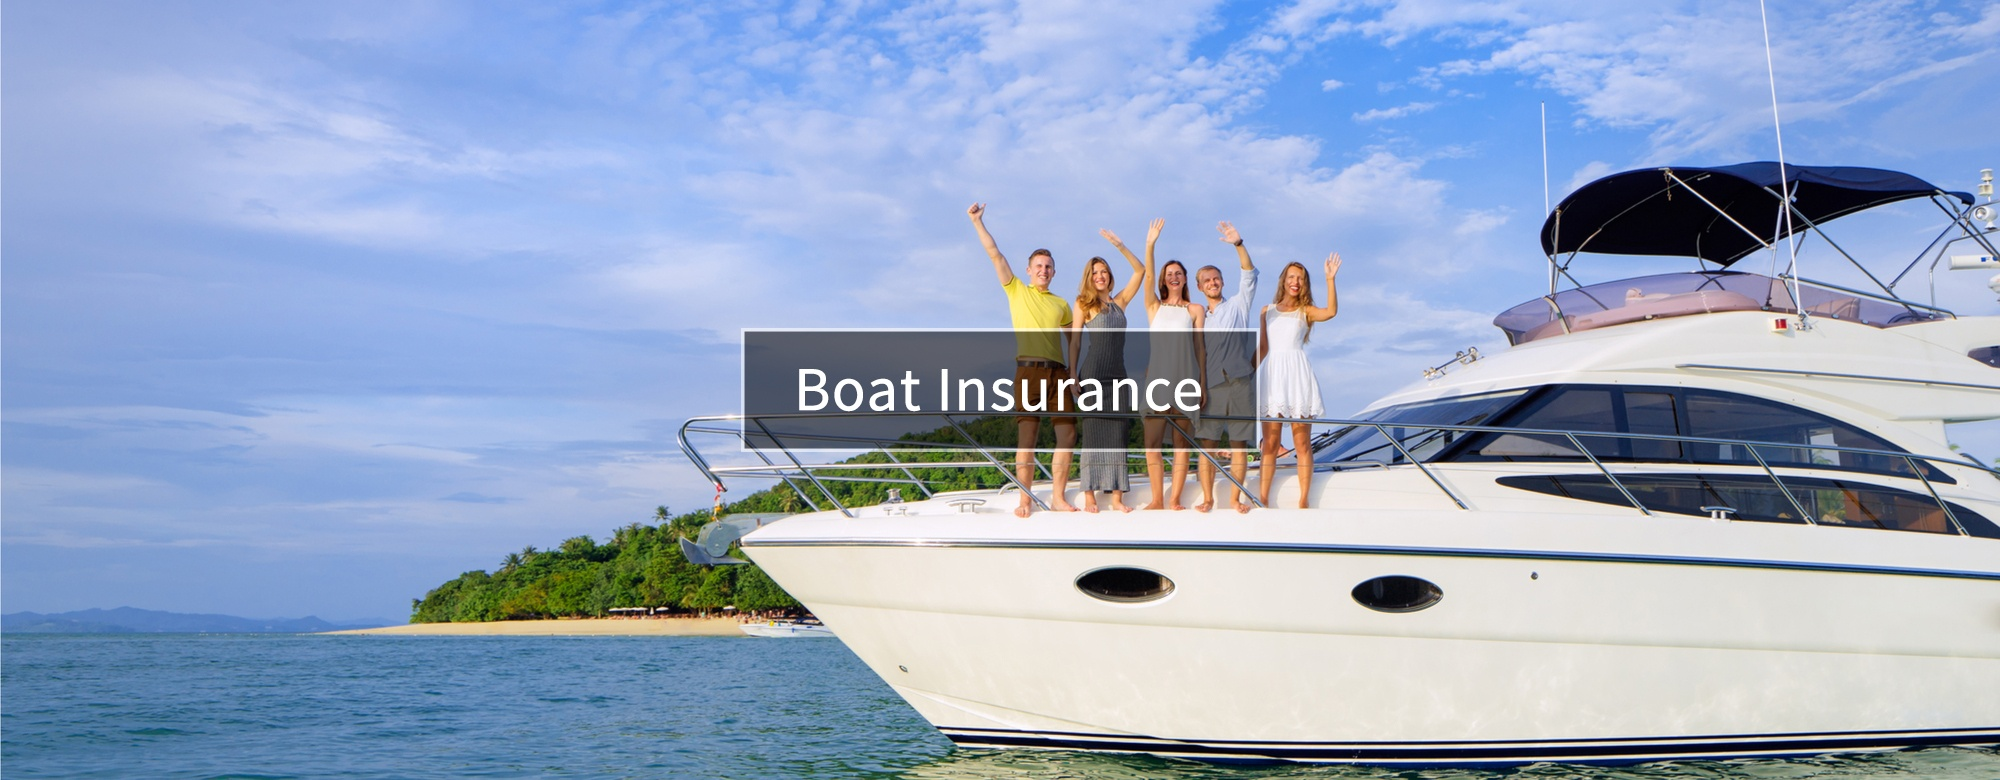 Boat Insurance in Massachusetts